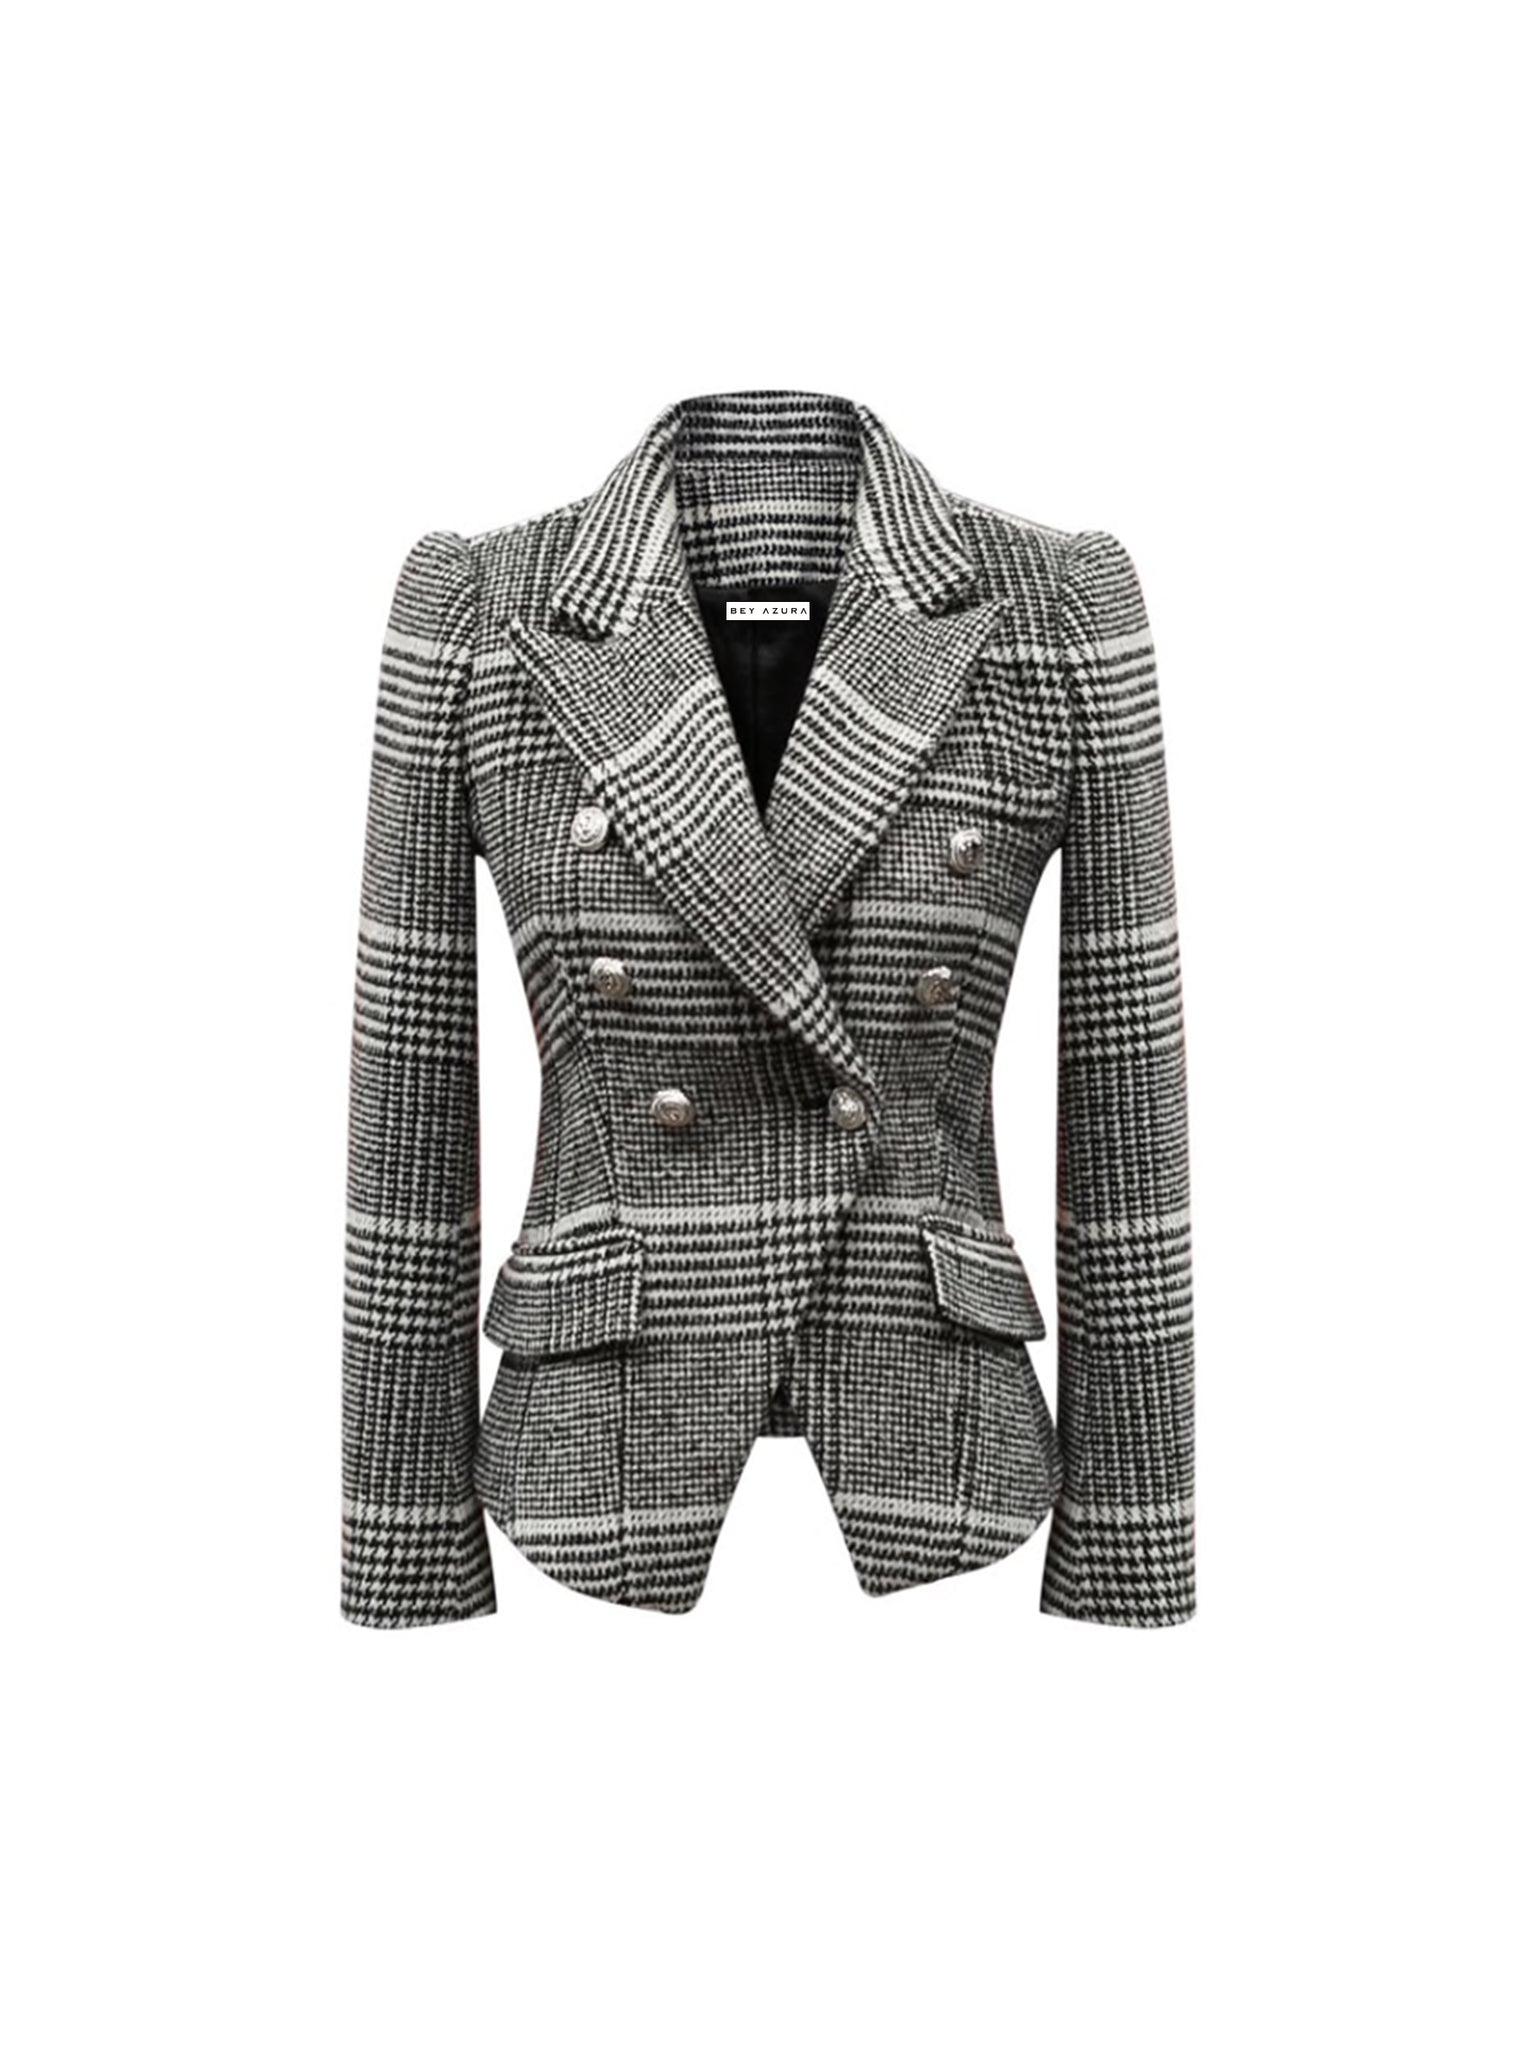 Gray Plaid Wool Notched Collar Blazer - BEYAZURA.COM